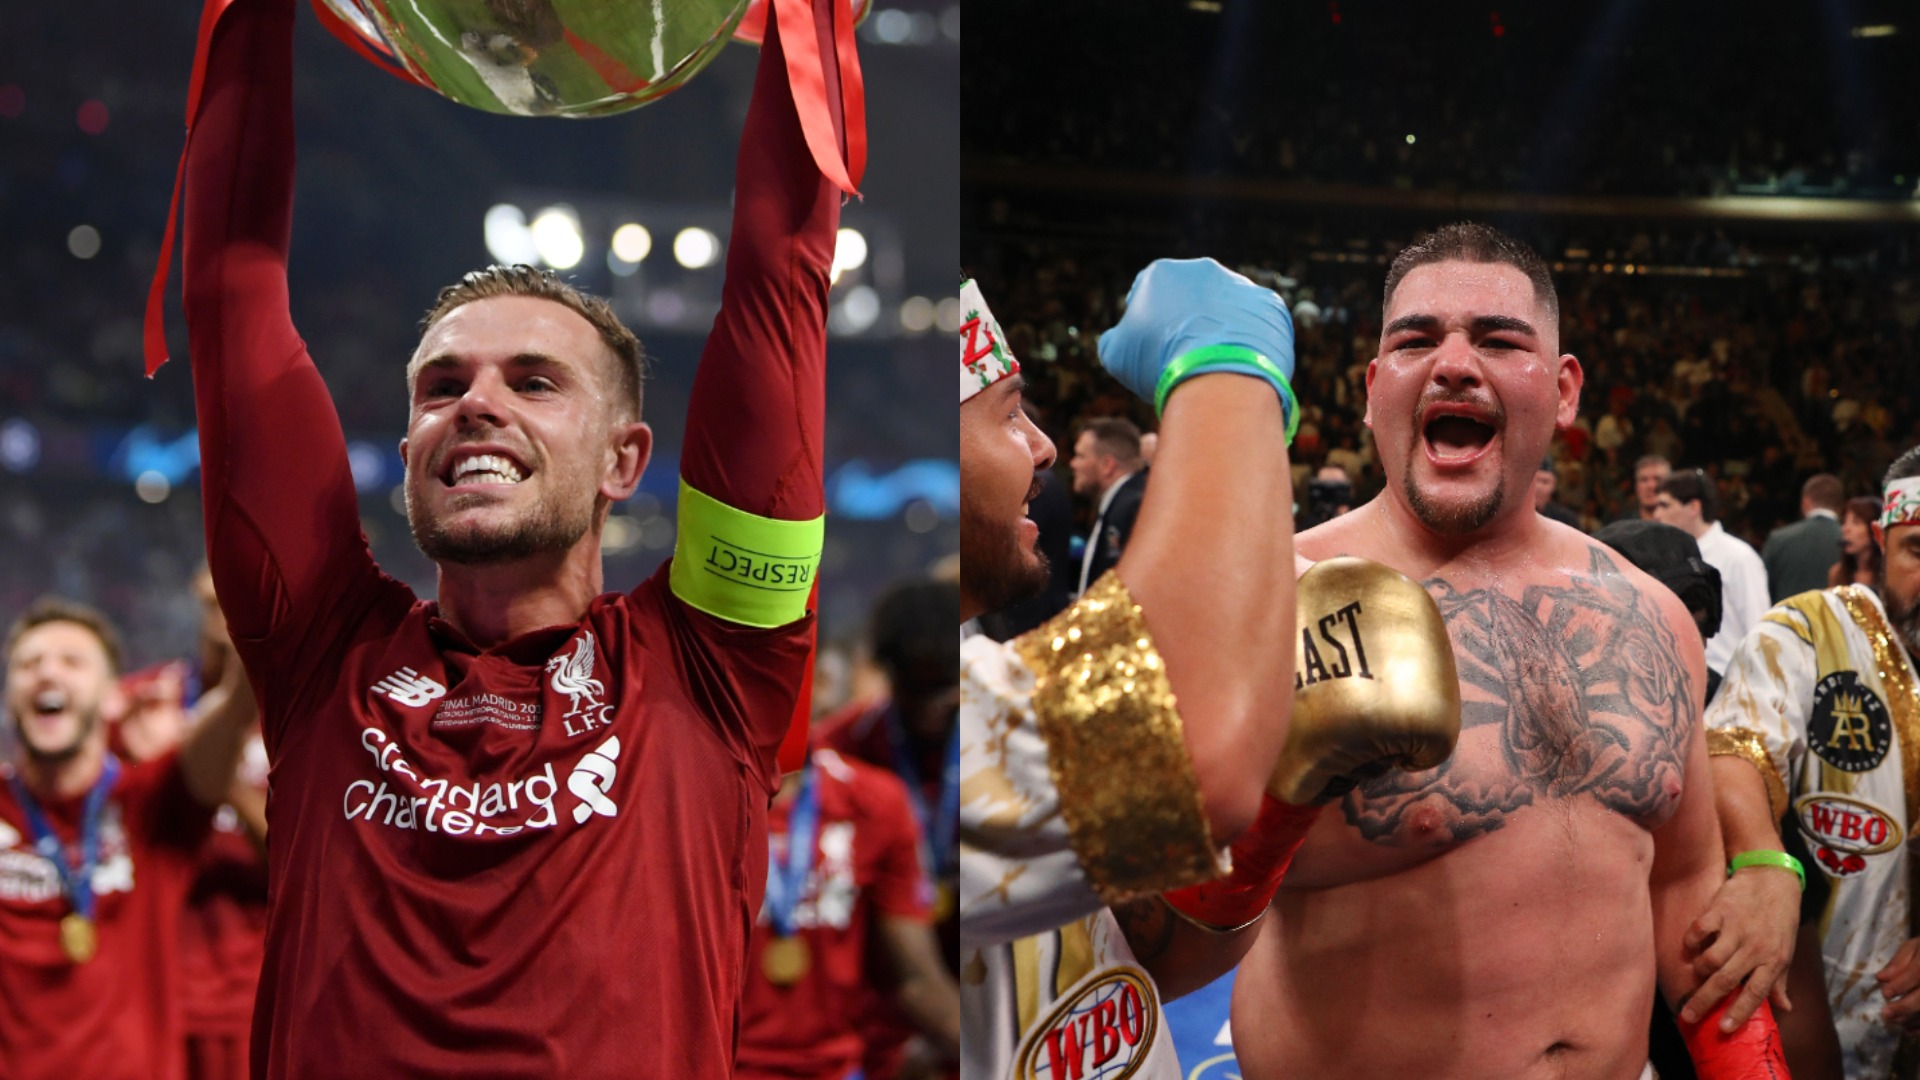 Liverpool and Ruiz prevail, Stokes battles Djokovic - the 21st century's greatest sporting days